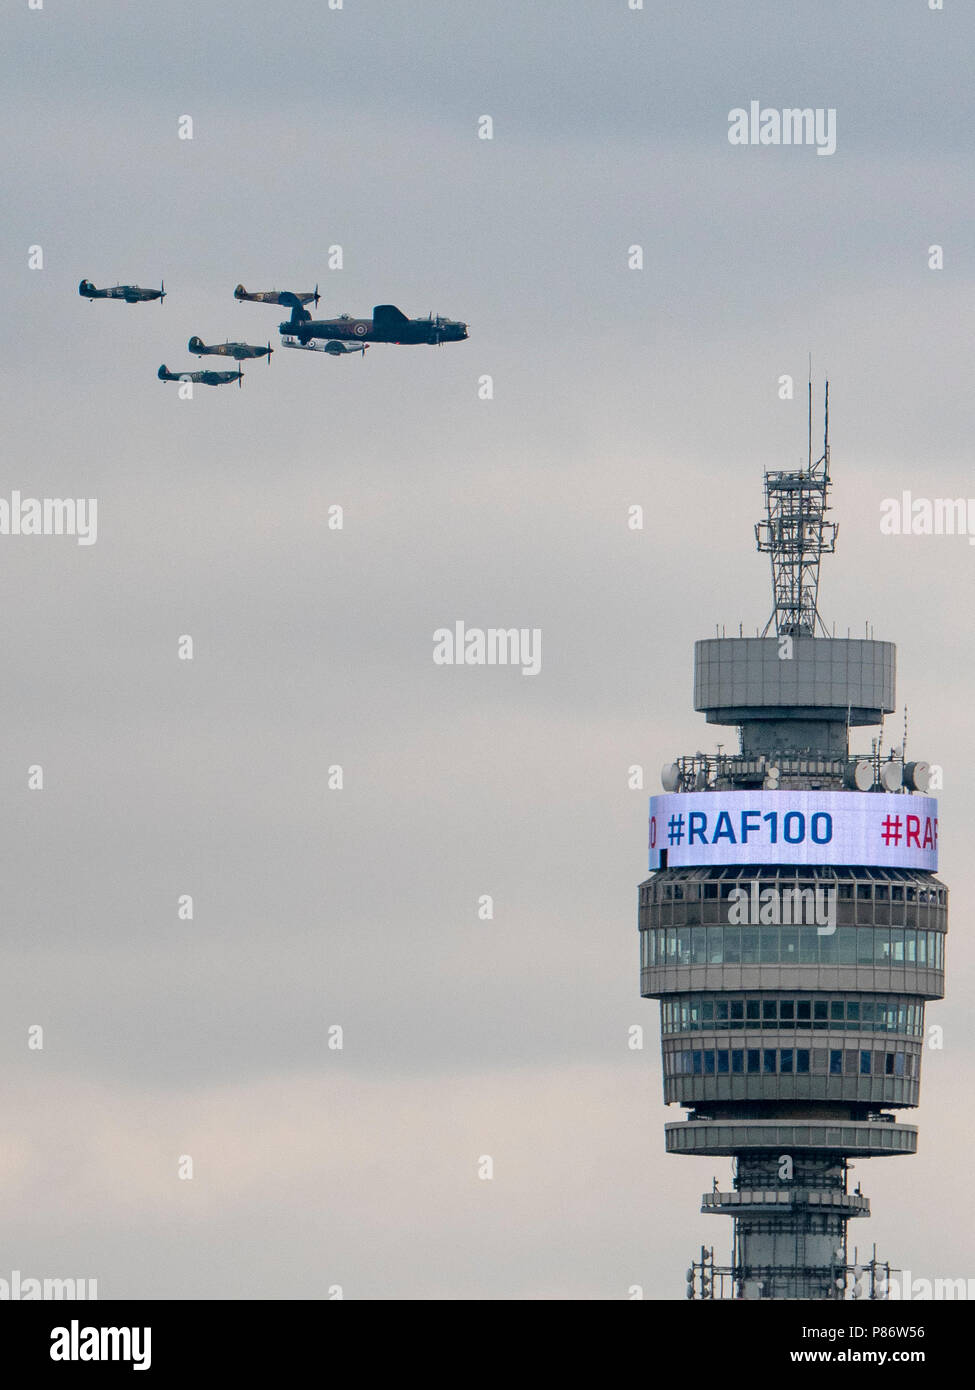 London, England, June 10th 2018, aircraft of the Battle of Britain Memorial Flight pass the BT Tower on their way to pass over Buckingham Palace to celebrate the 100th Anniversary of the Royal Air Force (RAF) Credit: Louis Berk/Alamy Live News Stock Photo